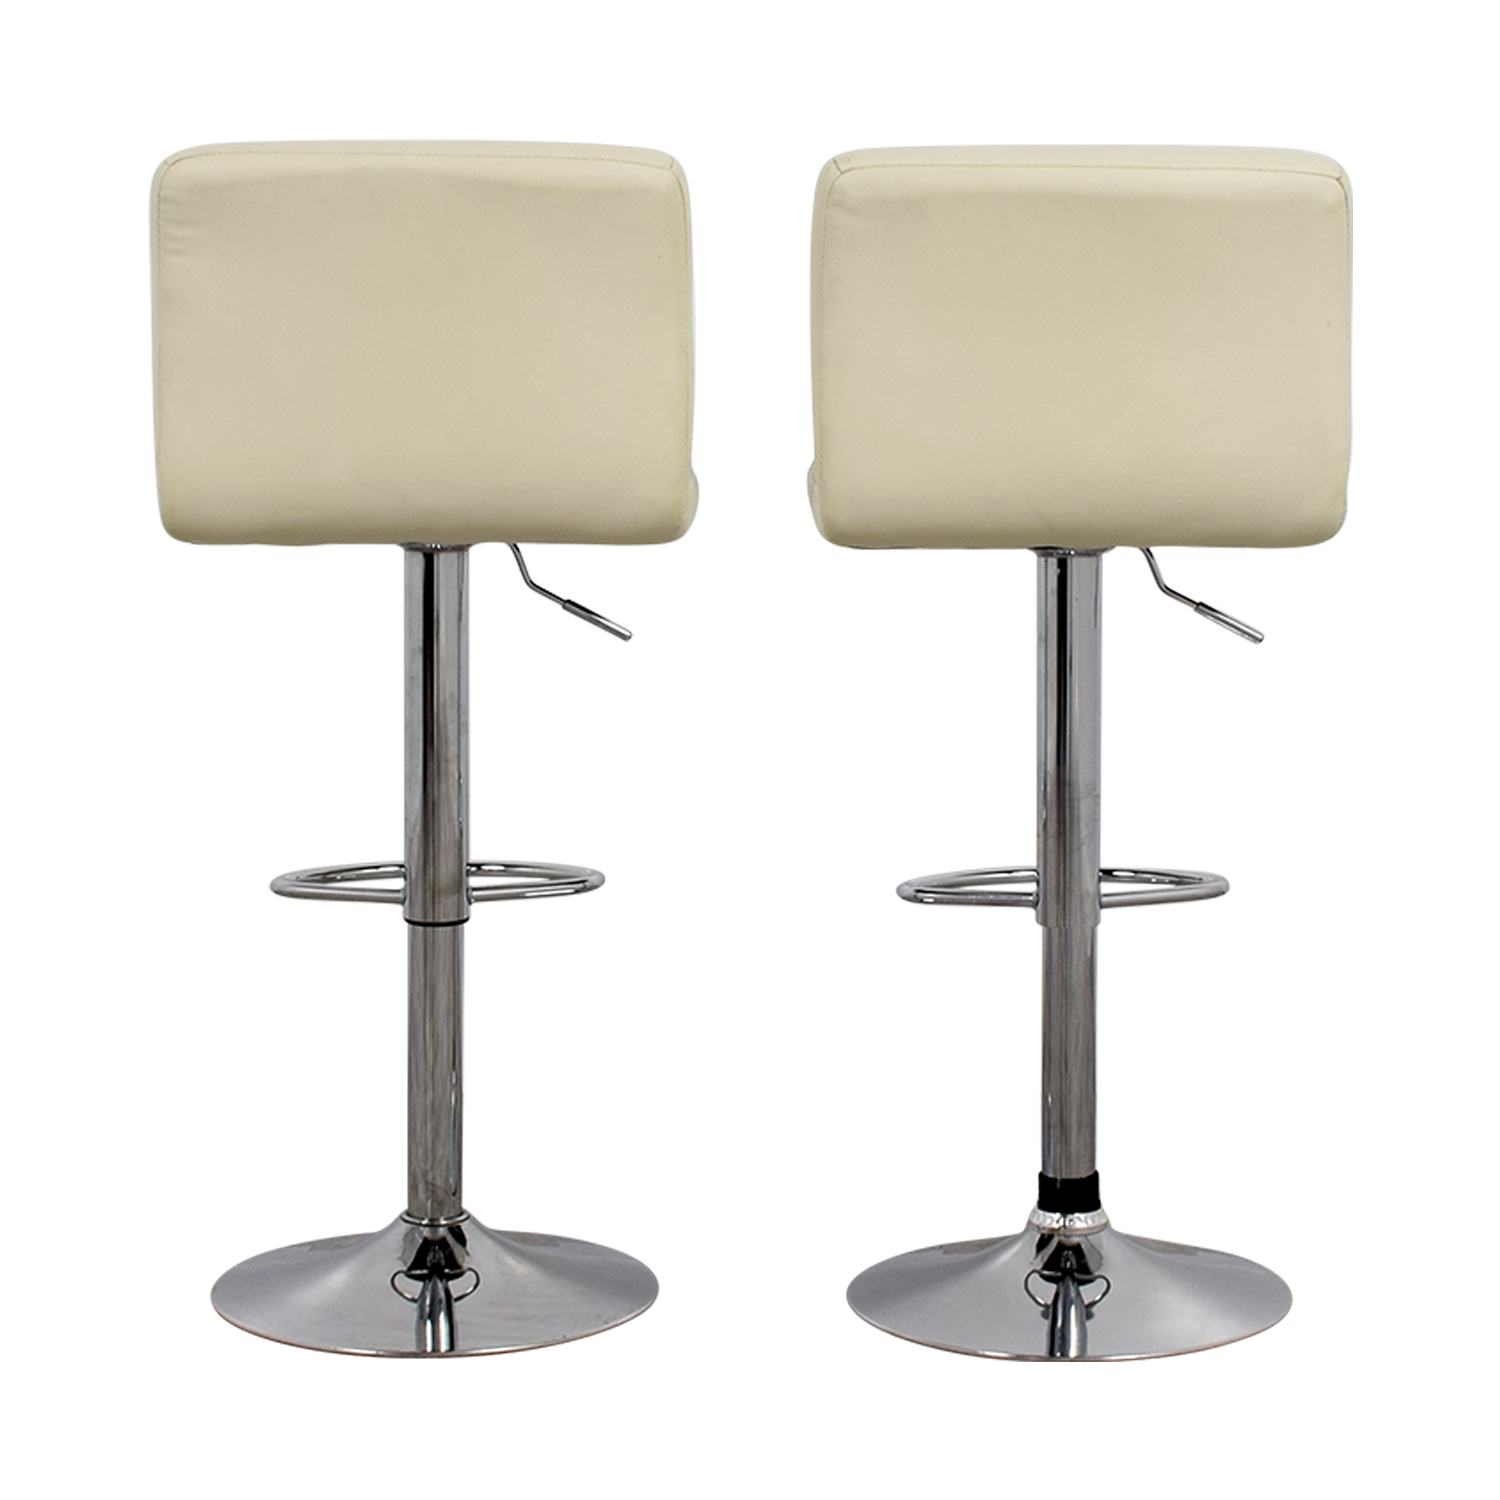 Creme and Chrome Tufted Bar Stools discount